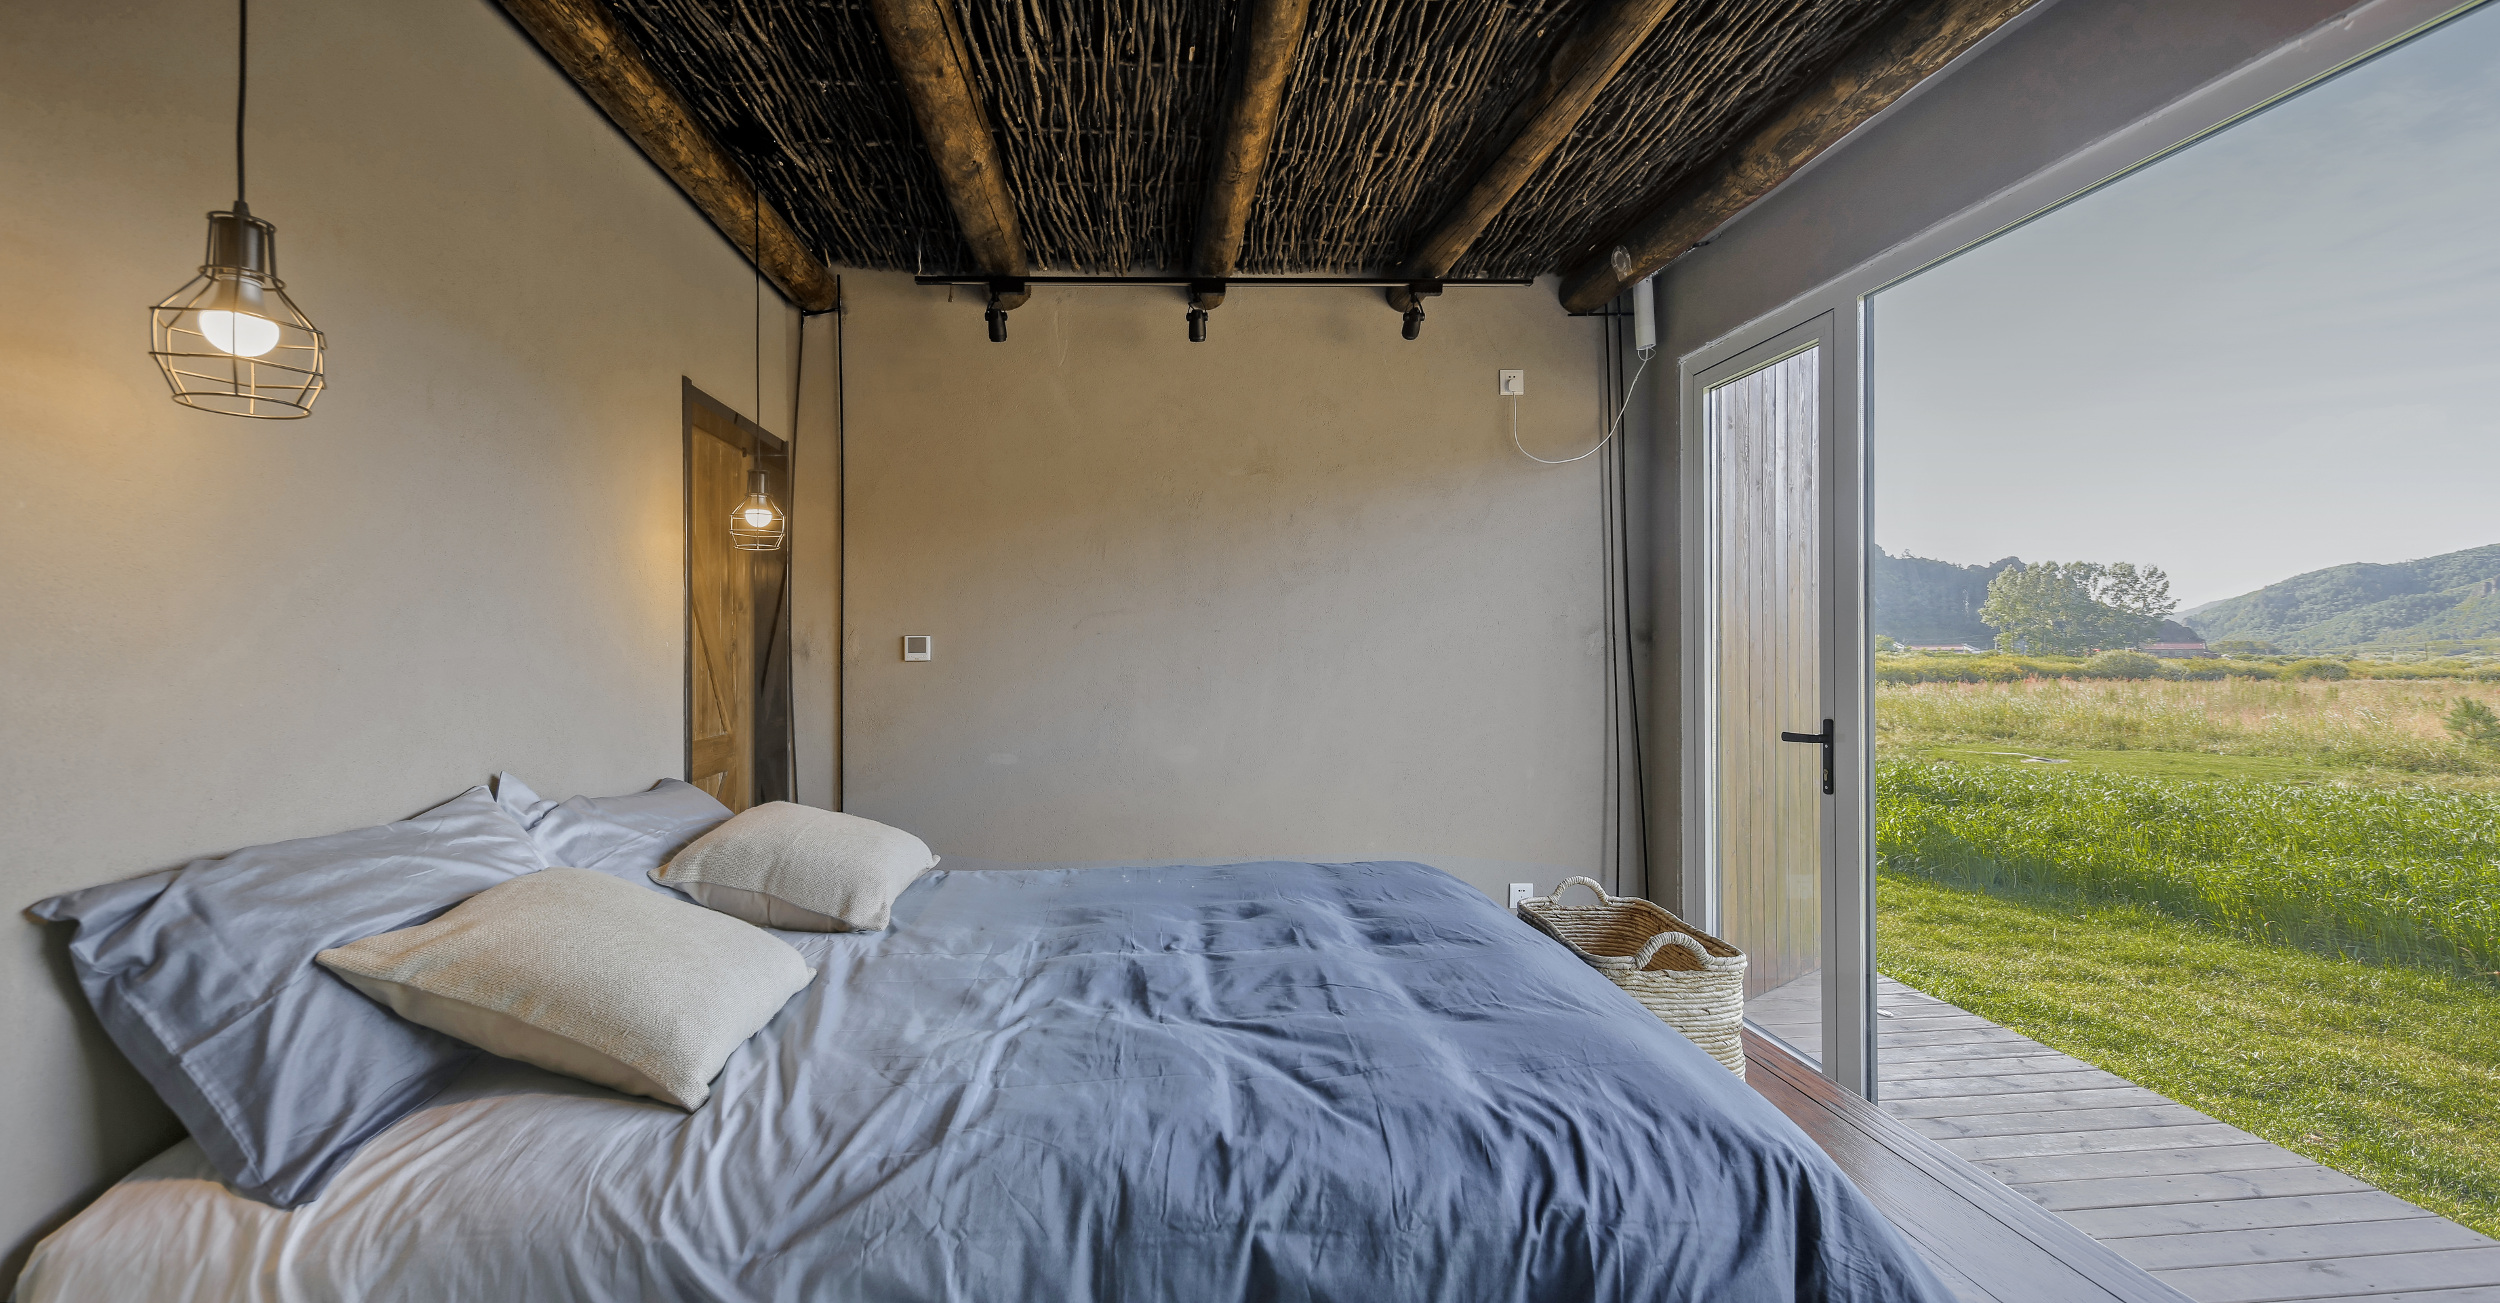 The accommodation offers uninterrupted views of the surrounding area.